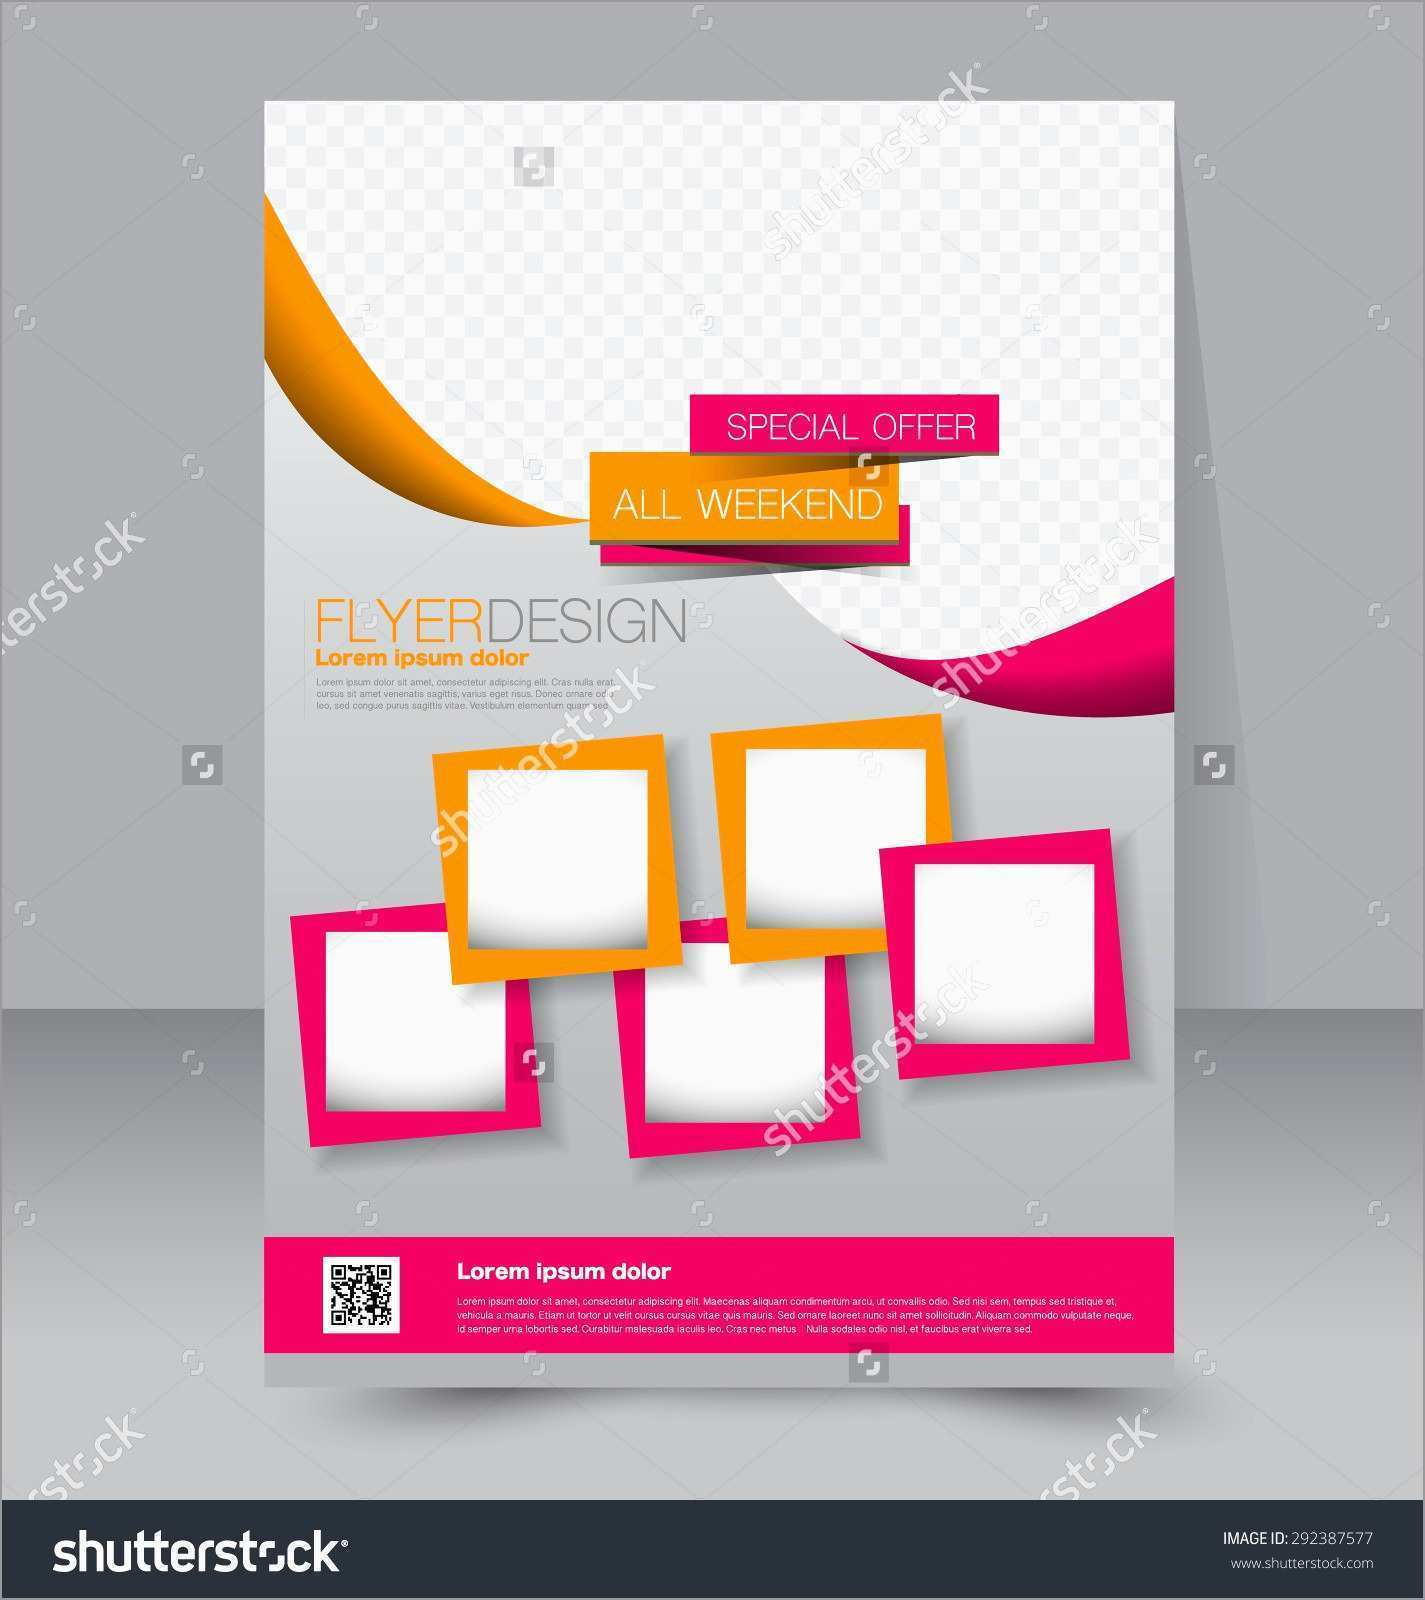 28 Online Adobe Illustrator Flyer Templates Maker for Adobe Illustrator Flyer Templates